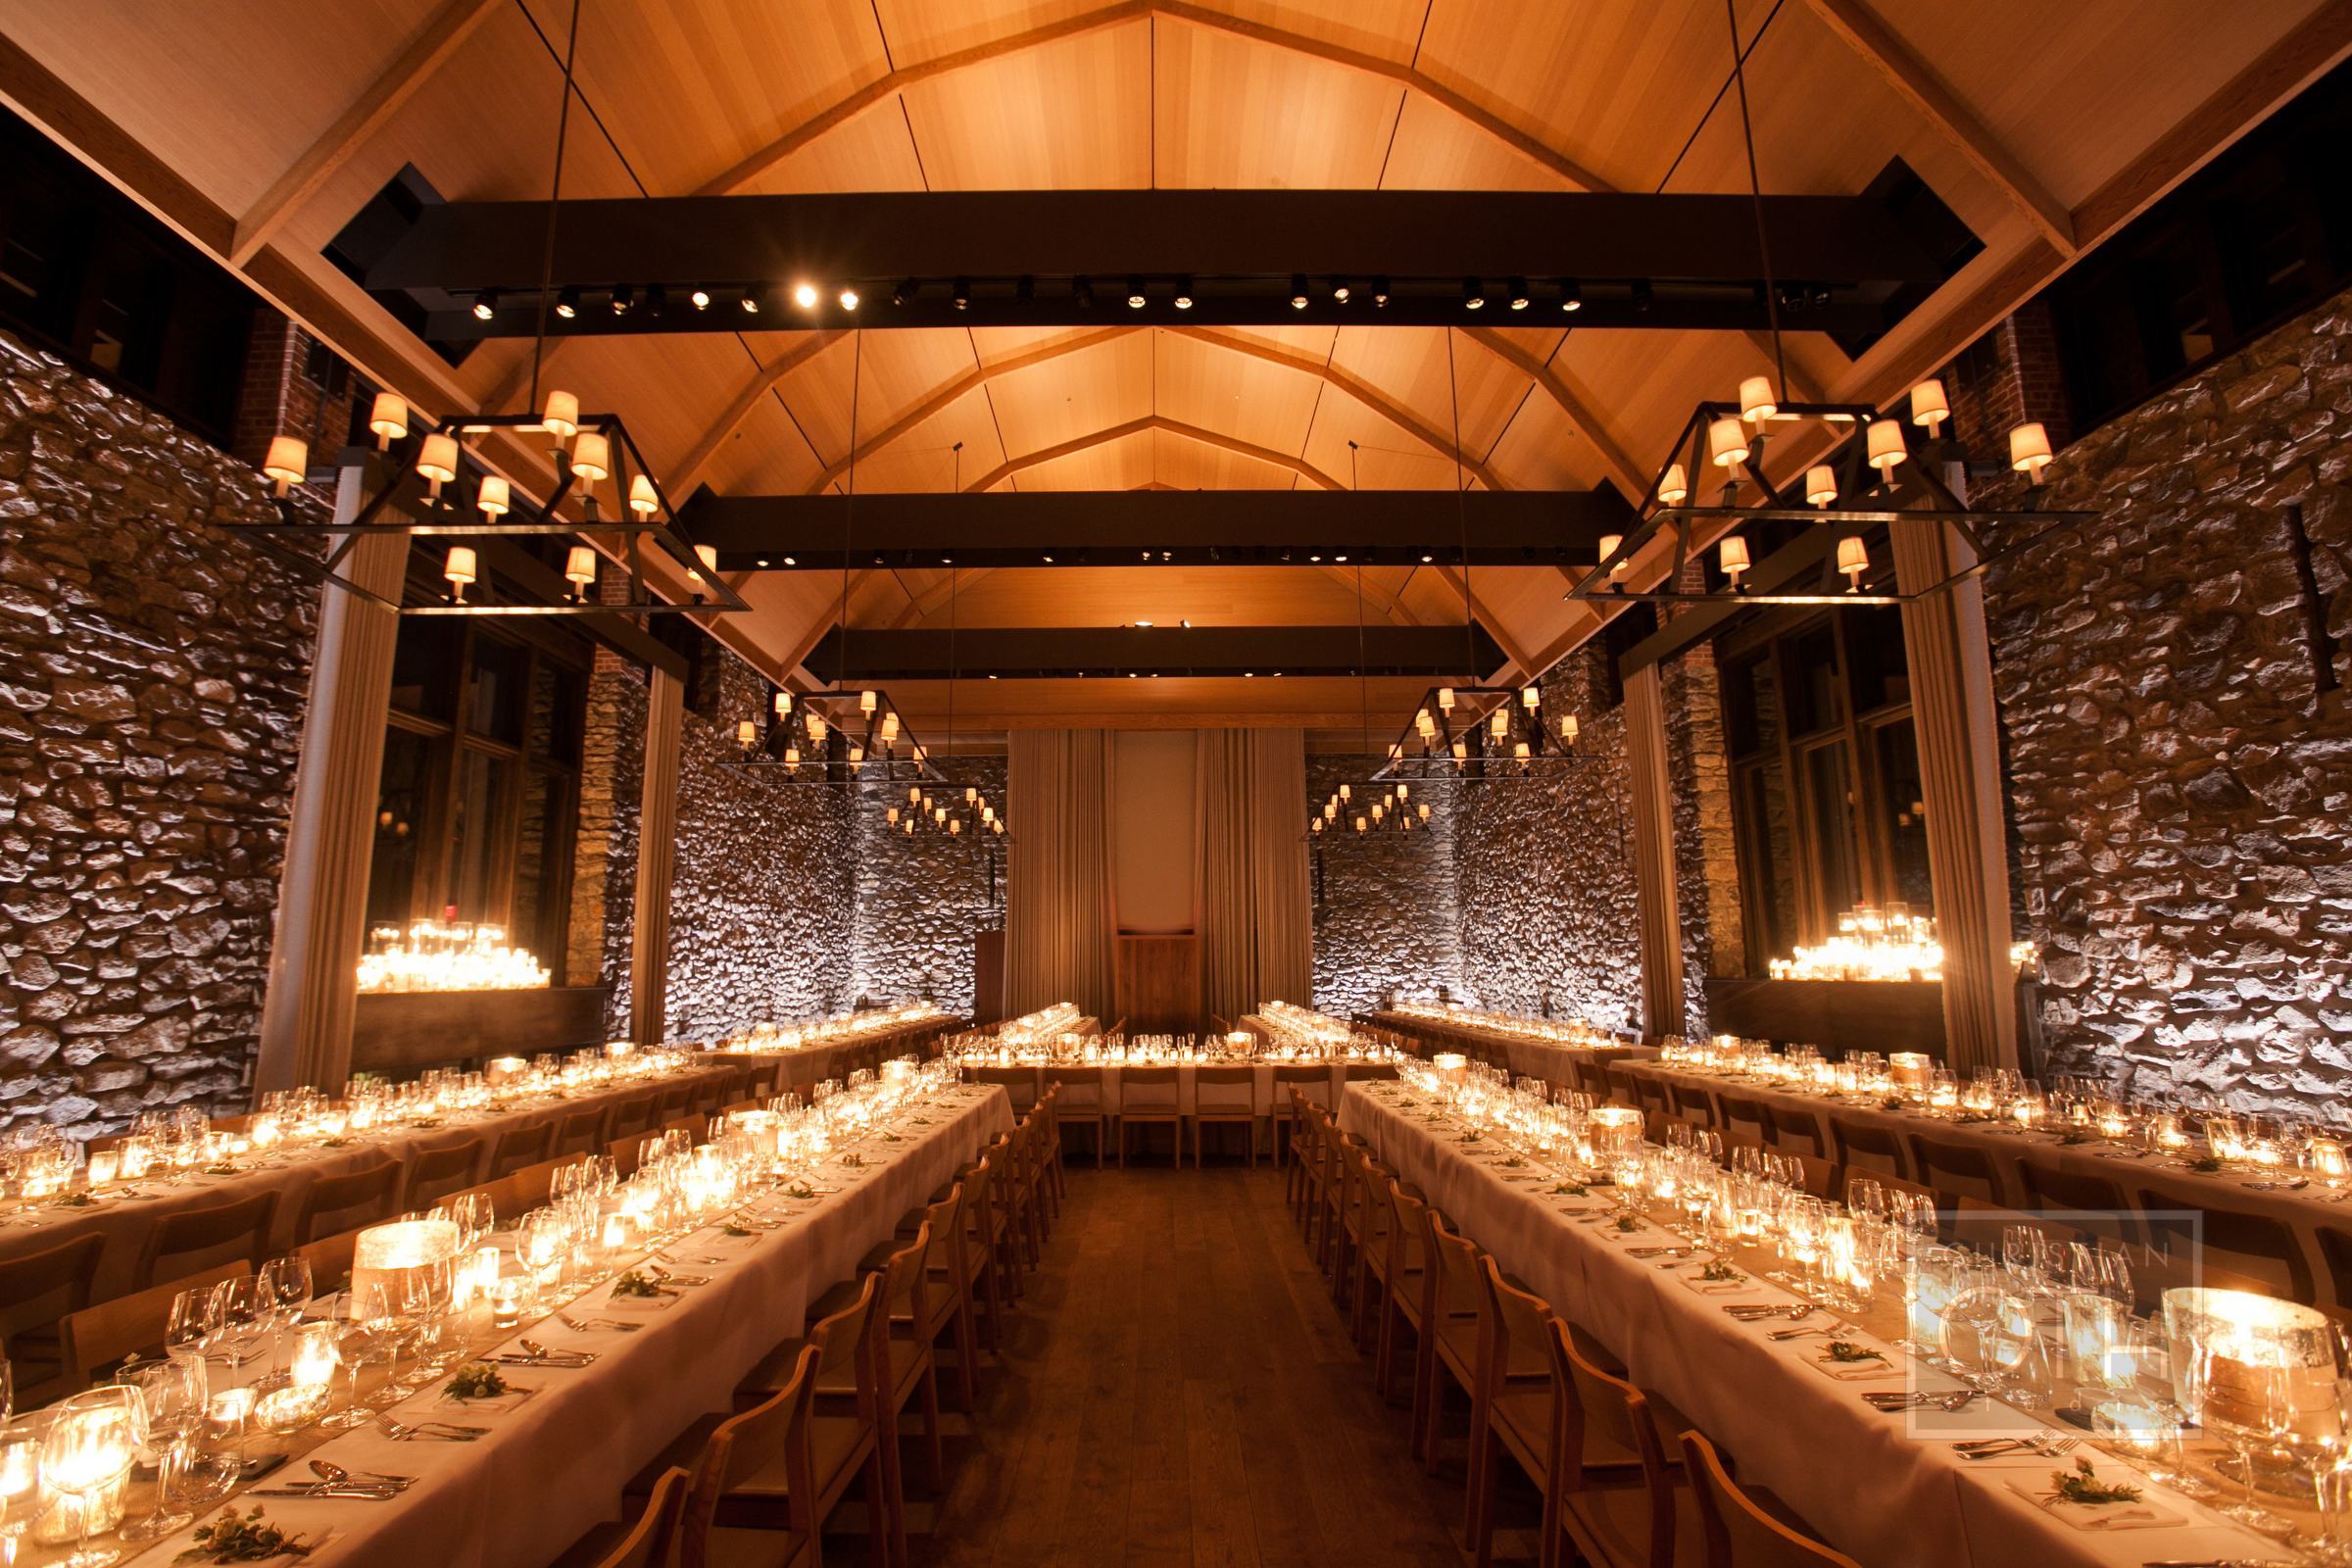 New York Reception Venue With Stone Walls Elizabeth Anne